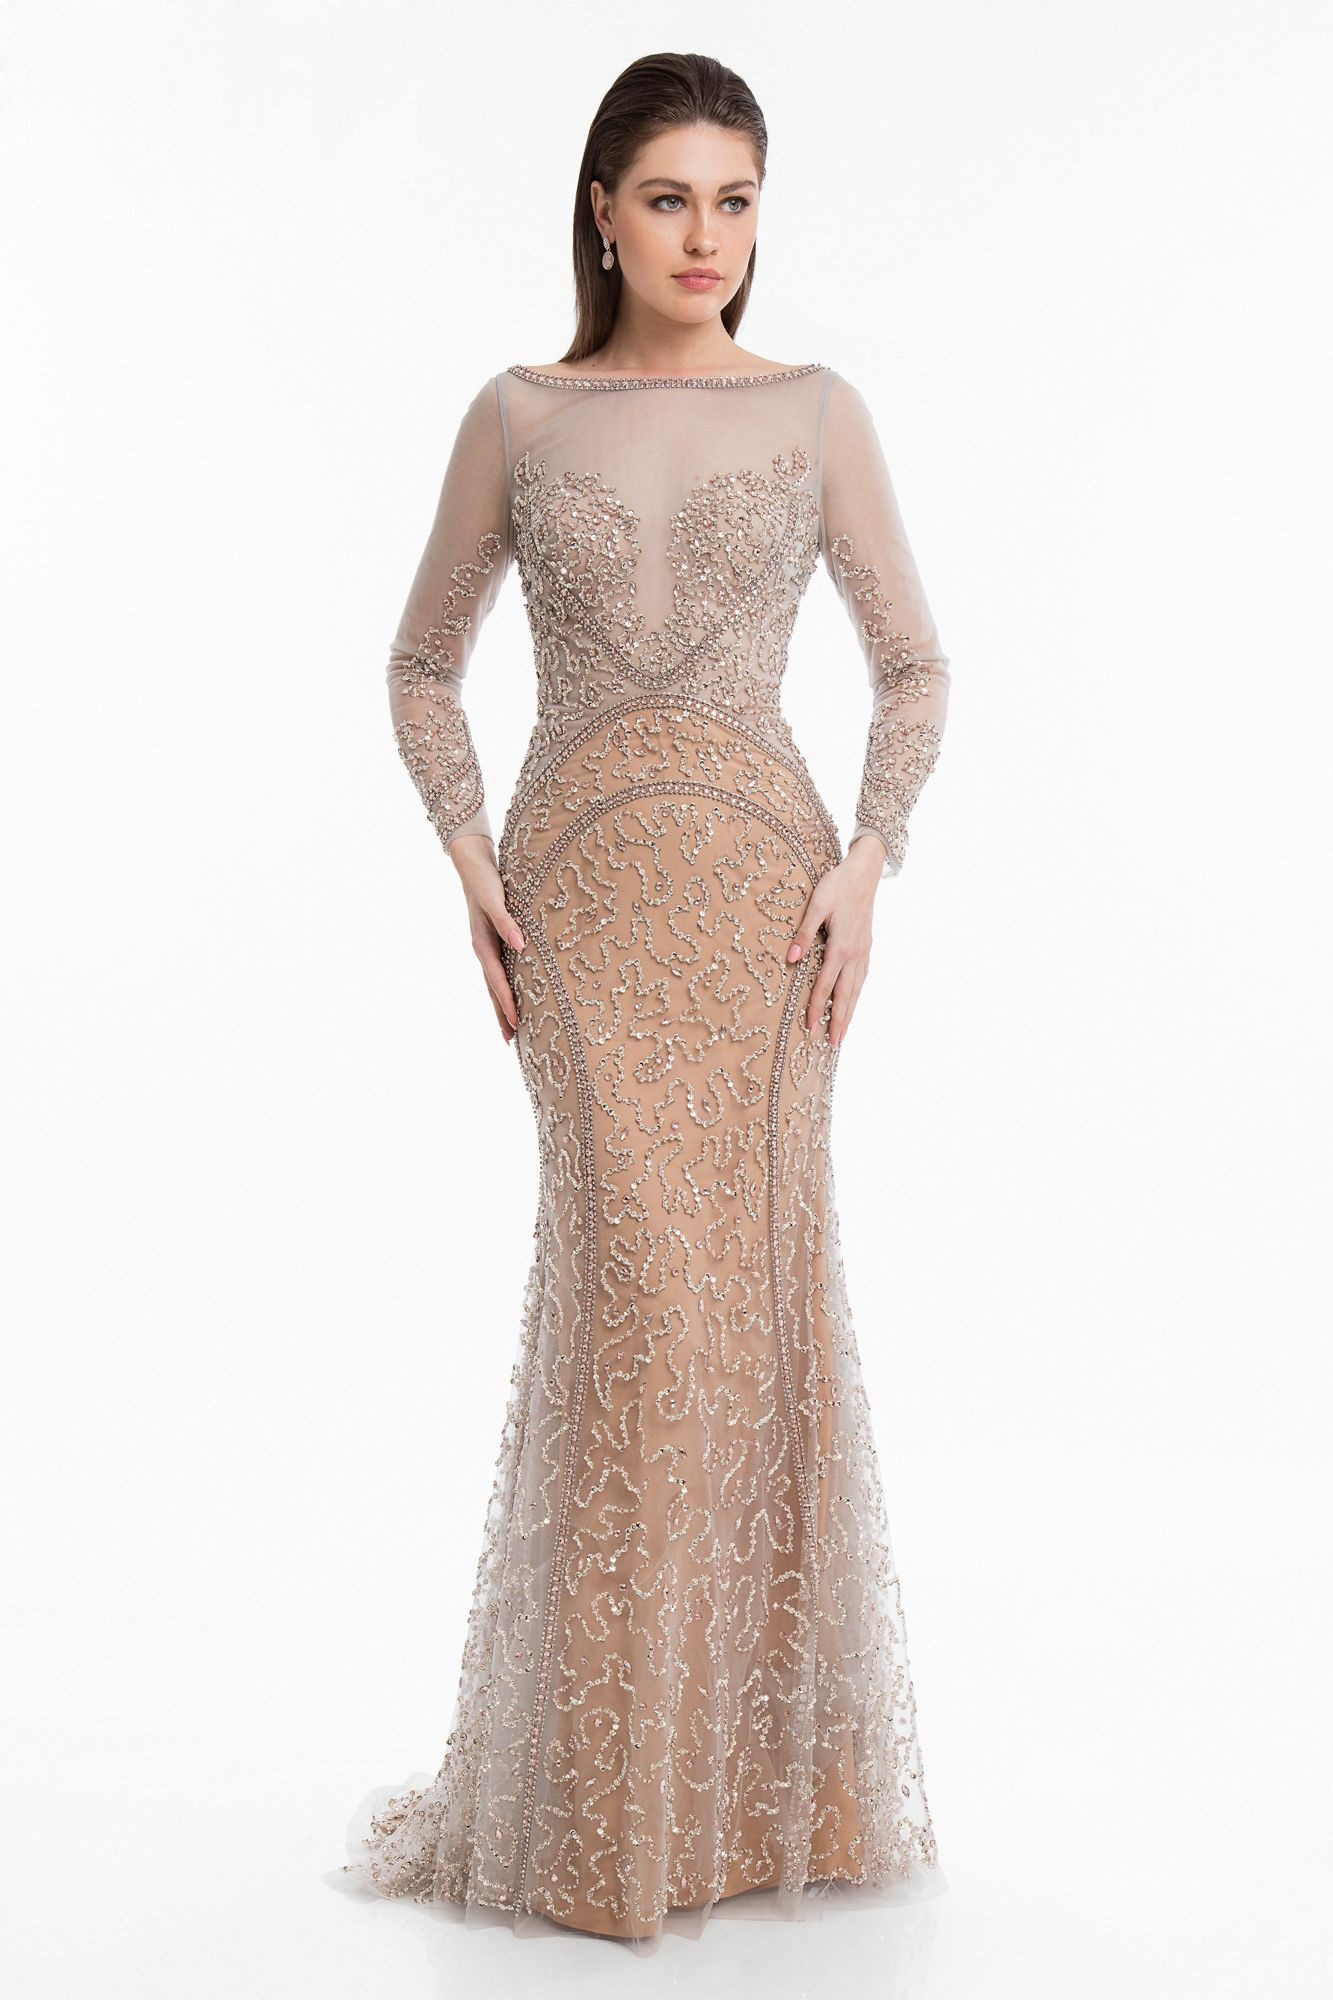 7c9d52ce5f Achieve elegance and glamour in the Illusion Bateau Long Sleeve Embellished  Evening Gown by Terani Couture.